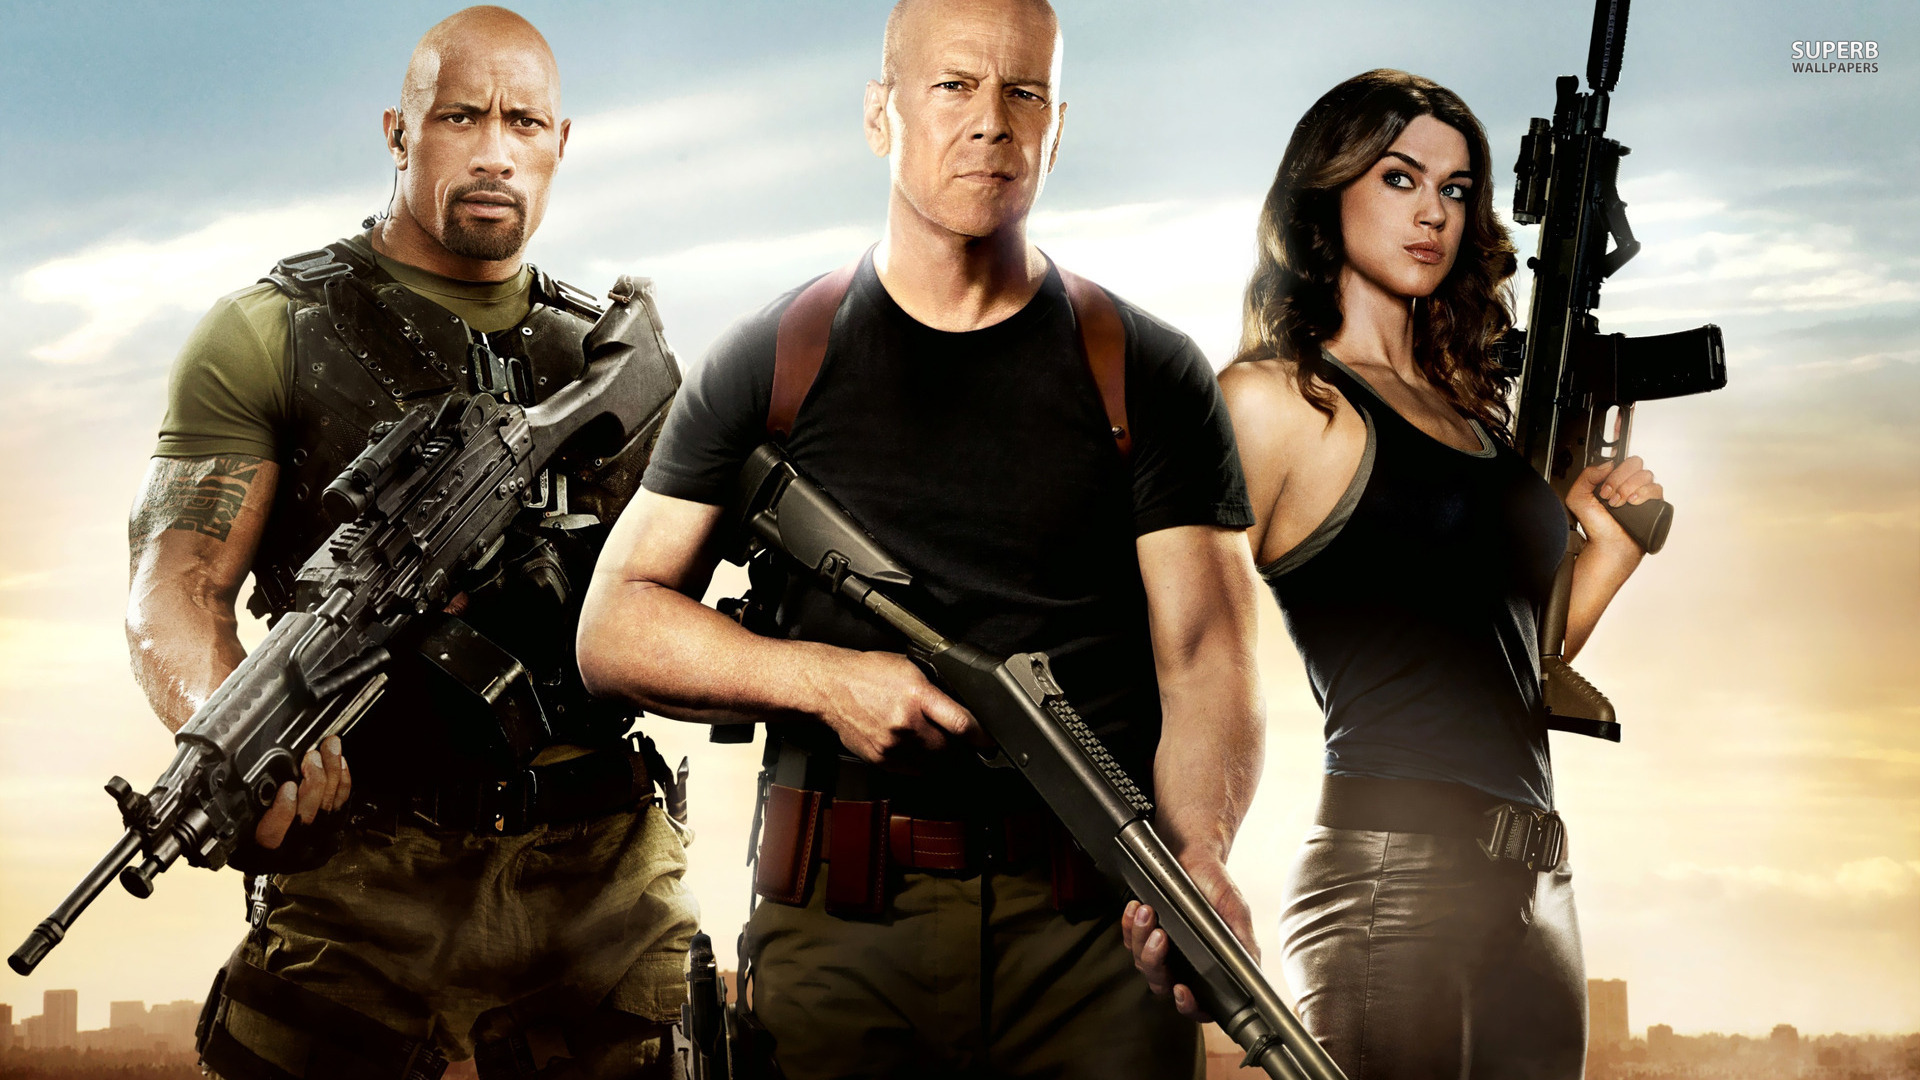 G.I. Joe: Retaliation wallpaper 1920x1080